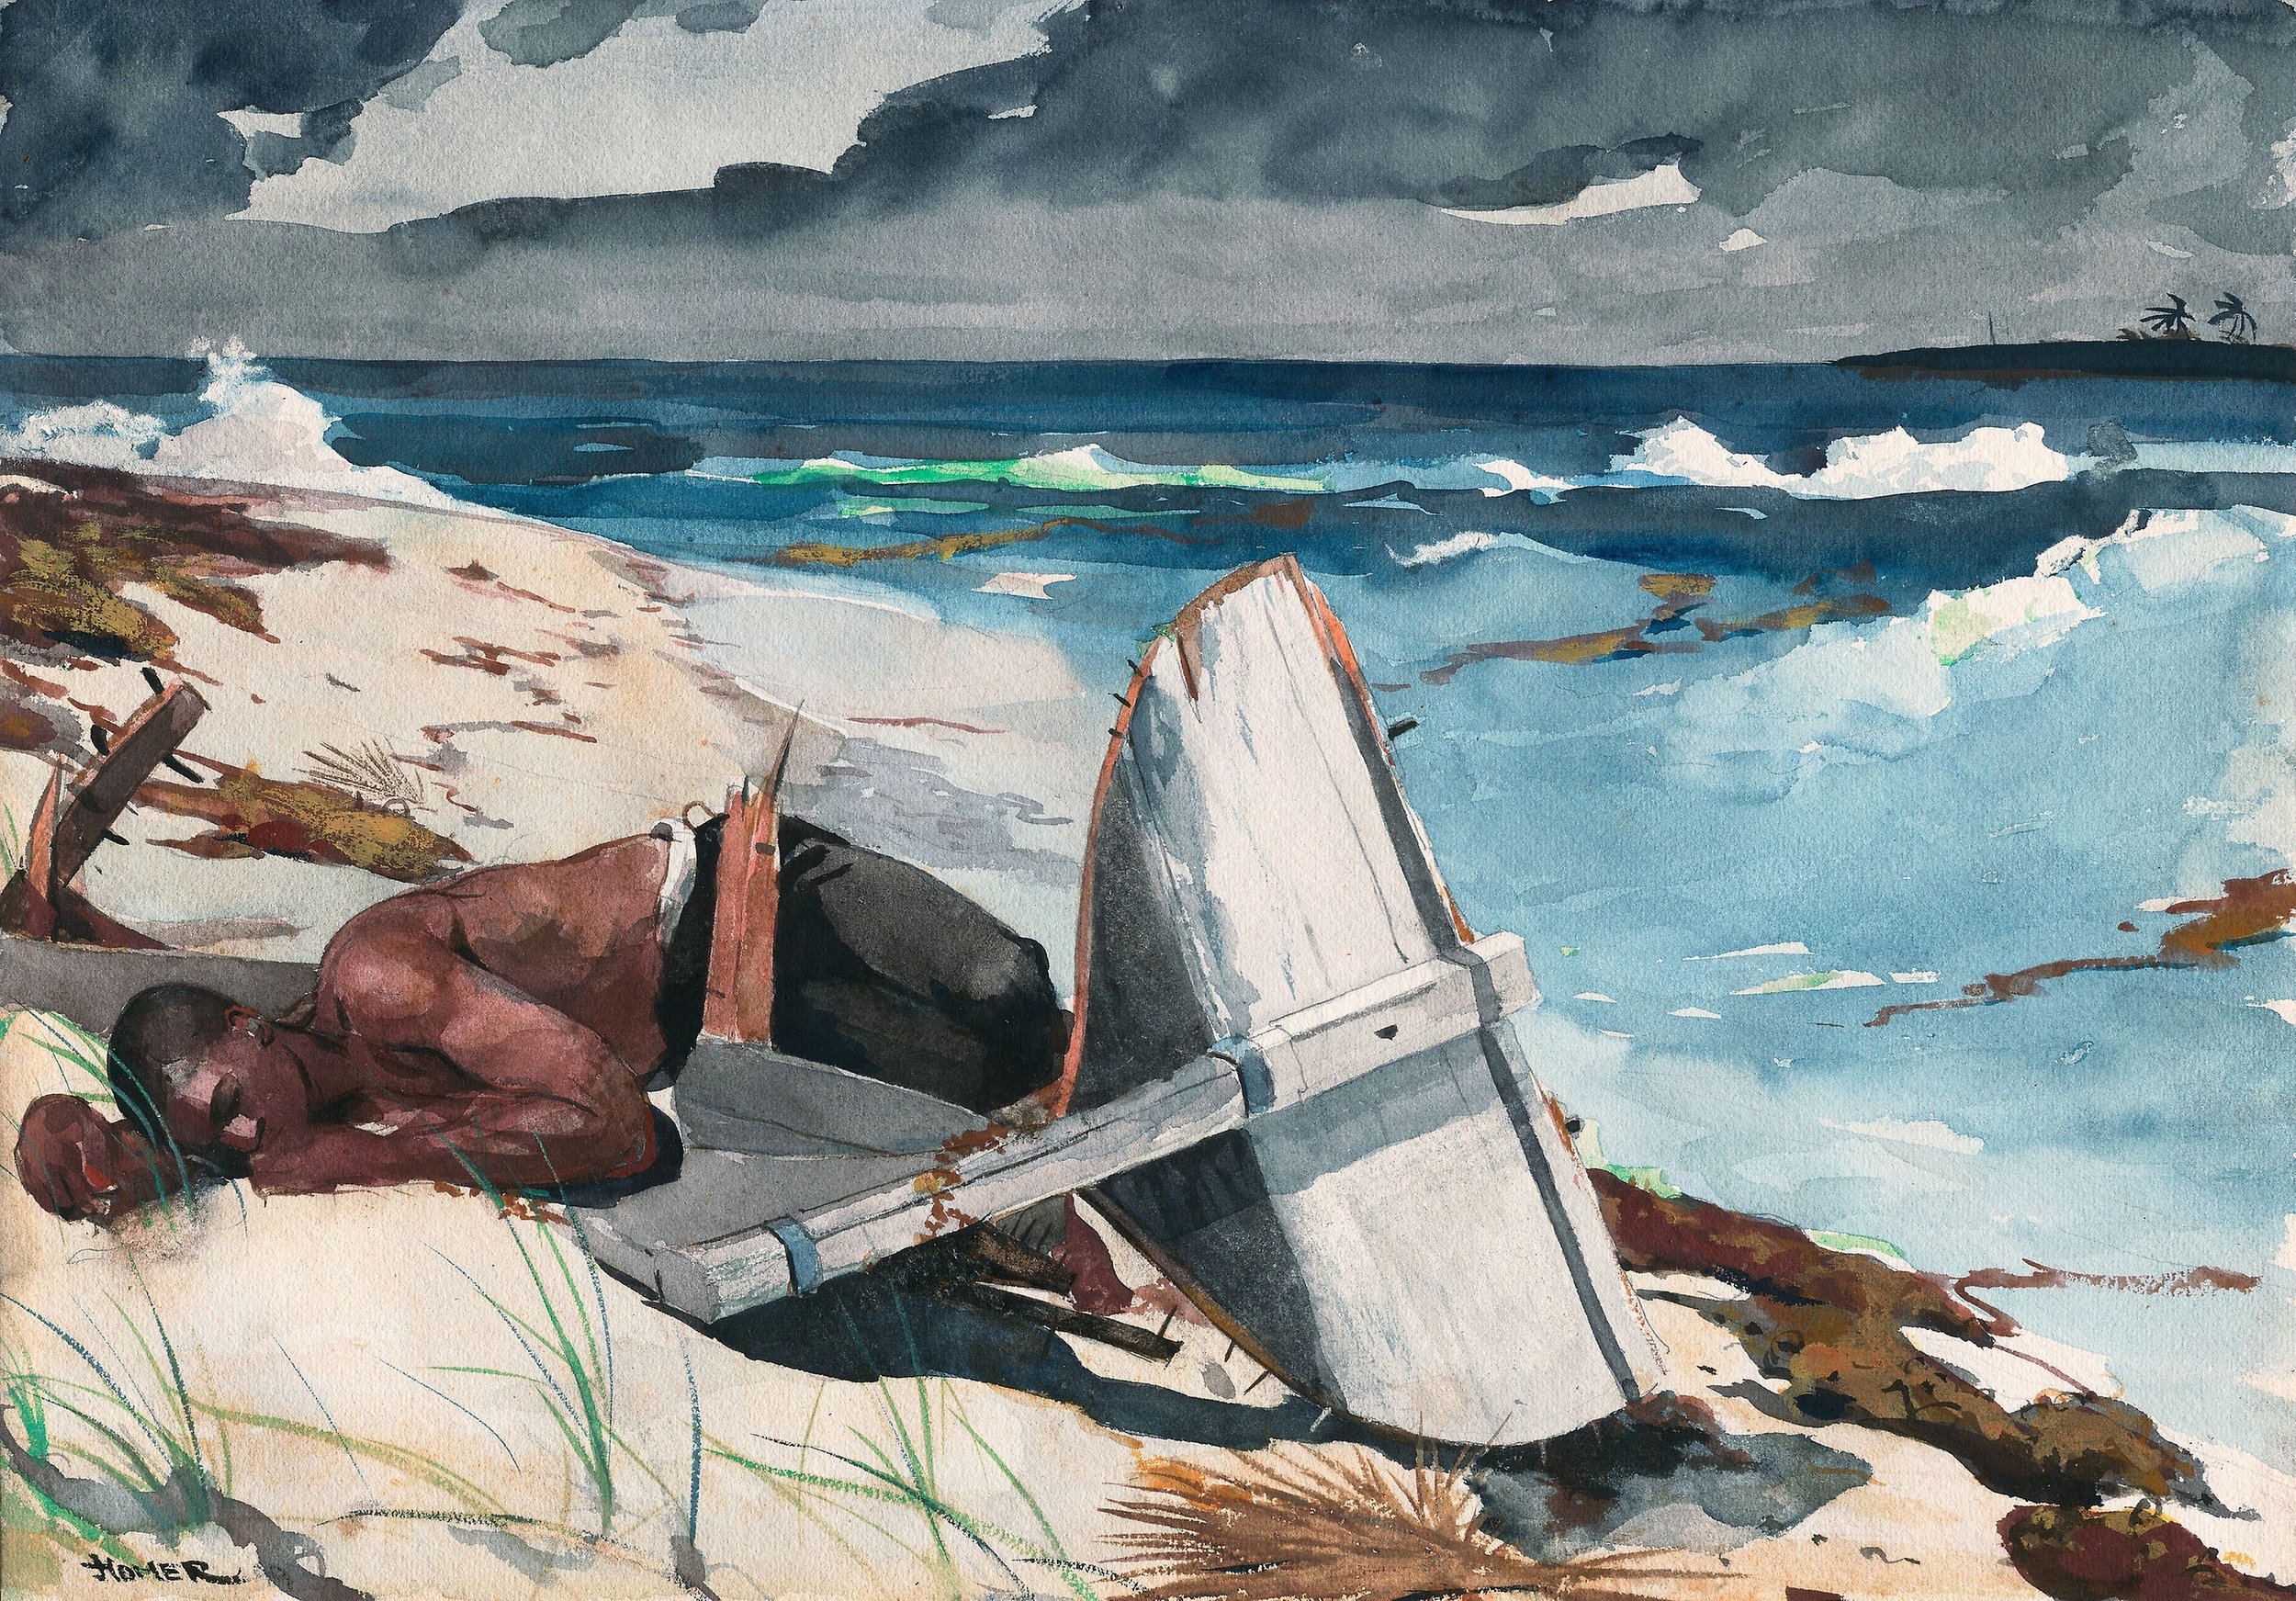 After the Hurricane (1899). Winslow Homer. Transparent watercolor, with touches of opaque watercolor, rewetting, blotting and scraping, over graphite, on moderately thick, moderately textured (twill texture on verso), ivory wove paper Inscriptions Signed recto, lower left corner, in brush and black watercolor. 380 x 543 mm. Image courtesy of Mr. and Mrs. Martin A. Ryerson Collection, sourced from the commons.